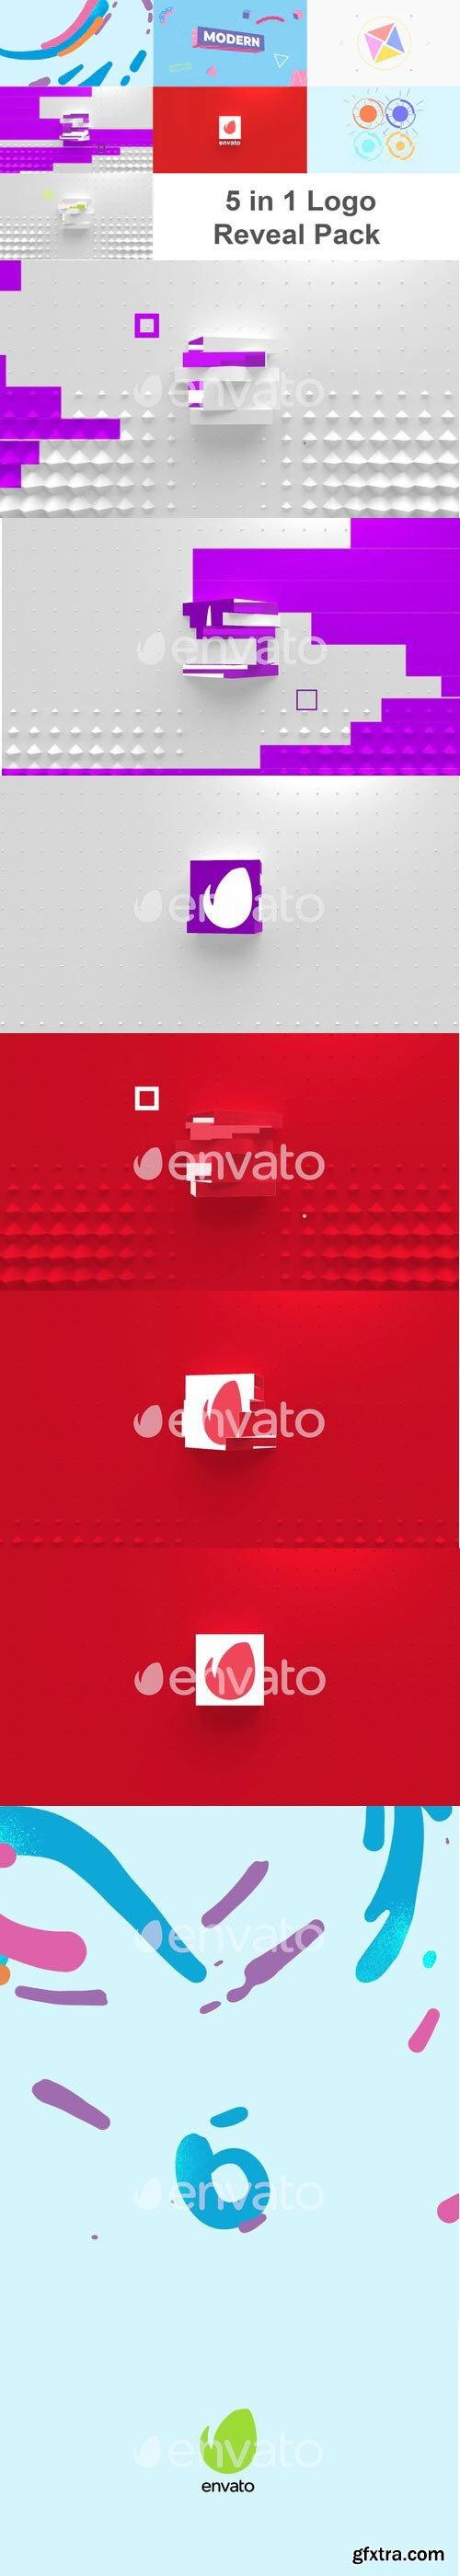 Videohive - Logo Reveal Pack - 28637113